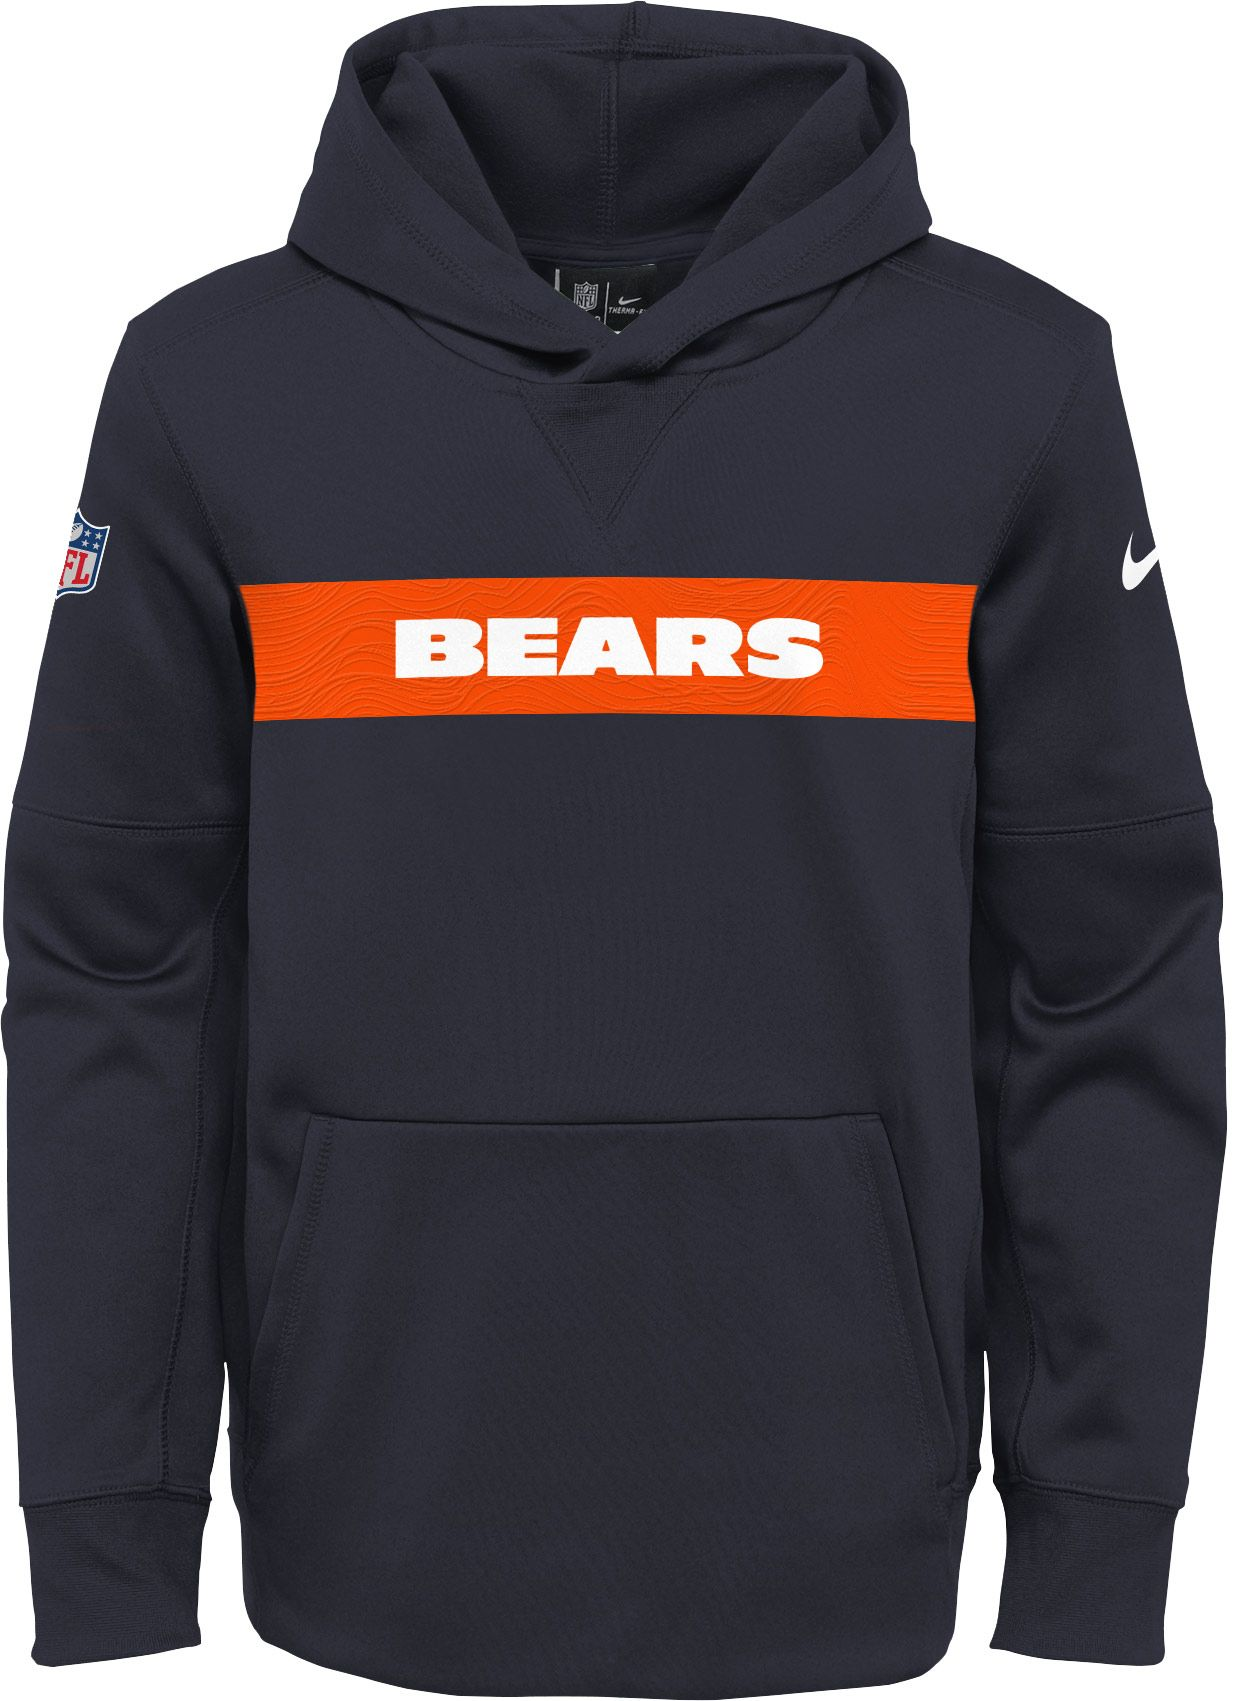 Nike Youth Chicago Bears Sideline Therma-FIT Navy Pullover Hoodie ... 97a6cecc3